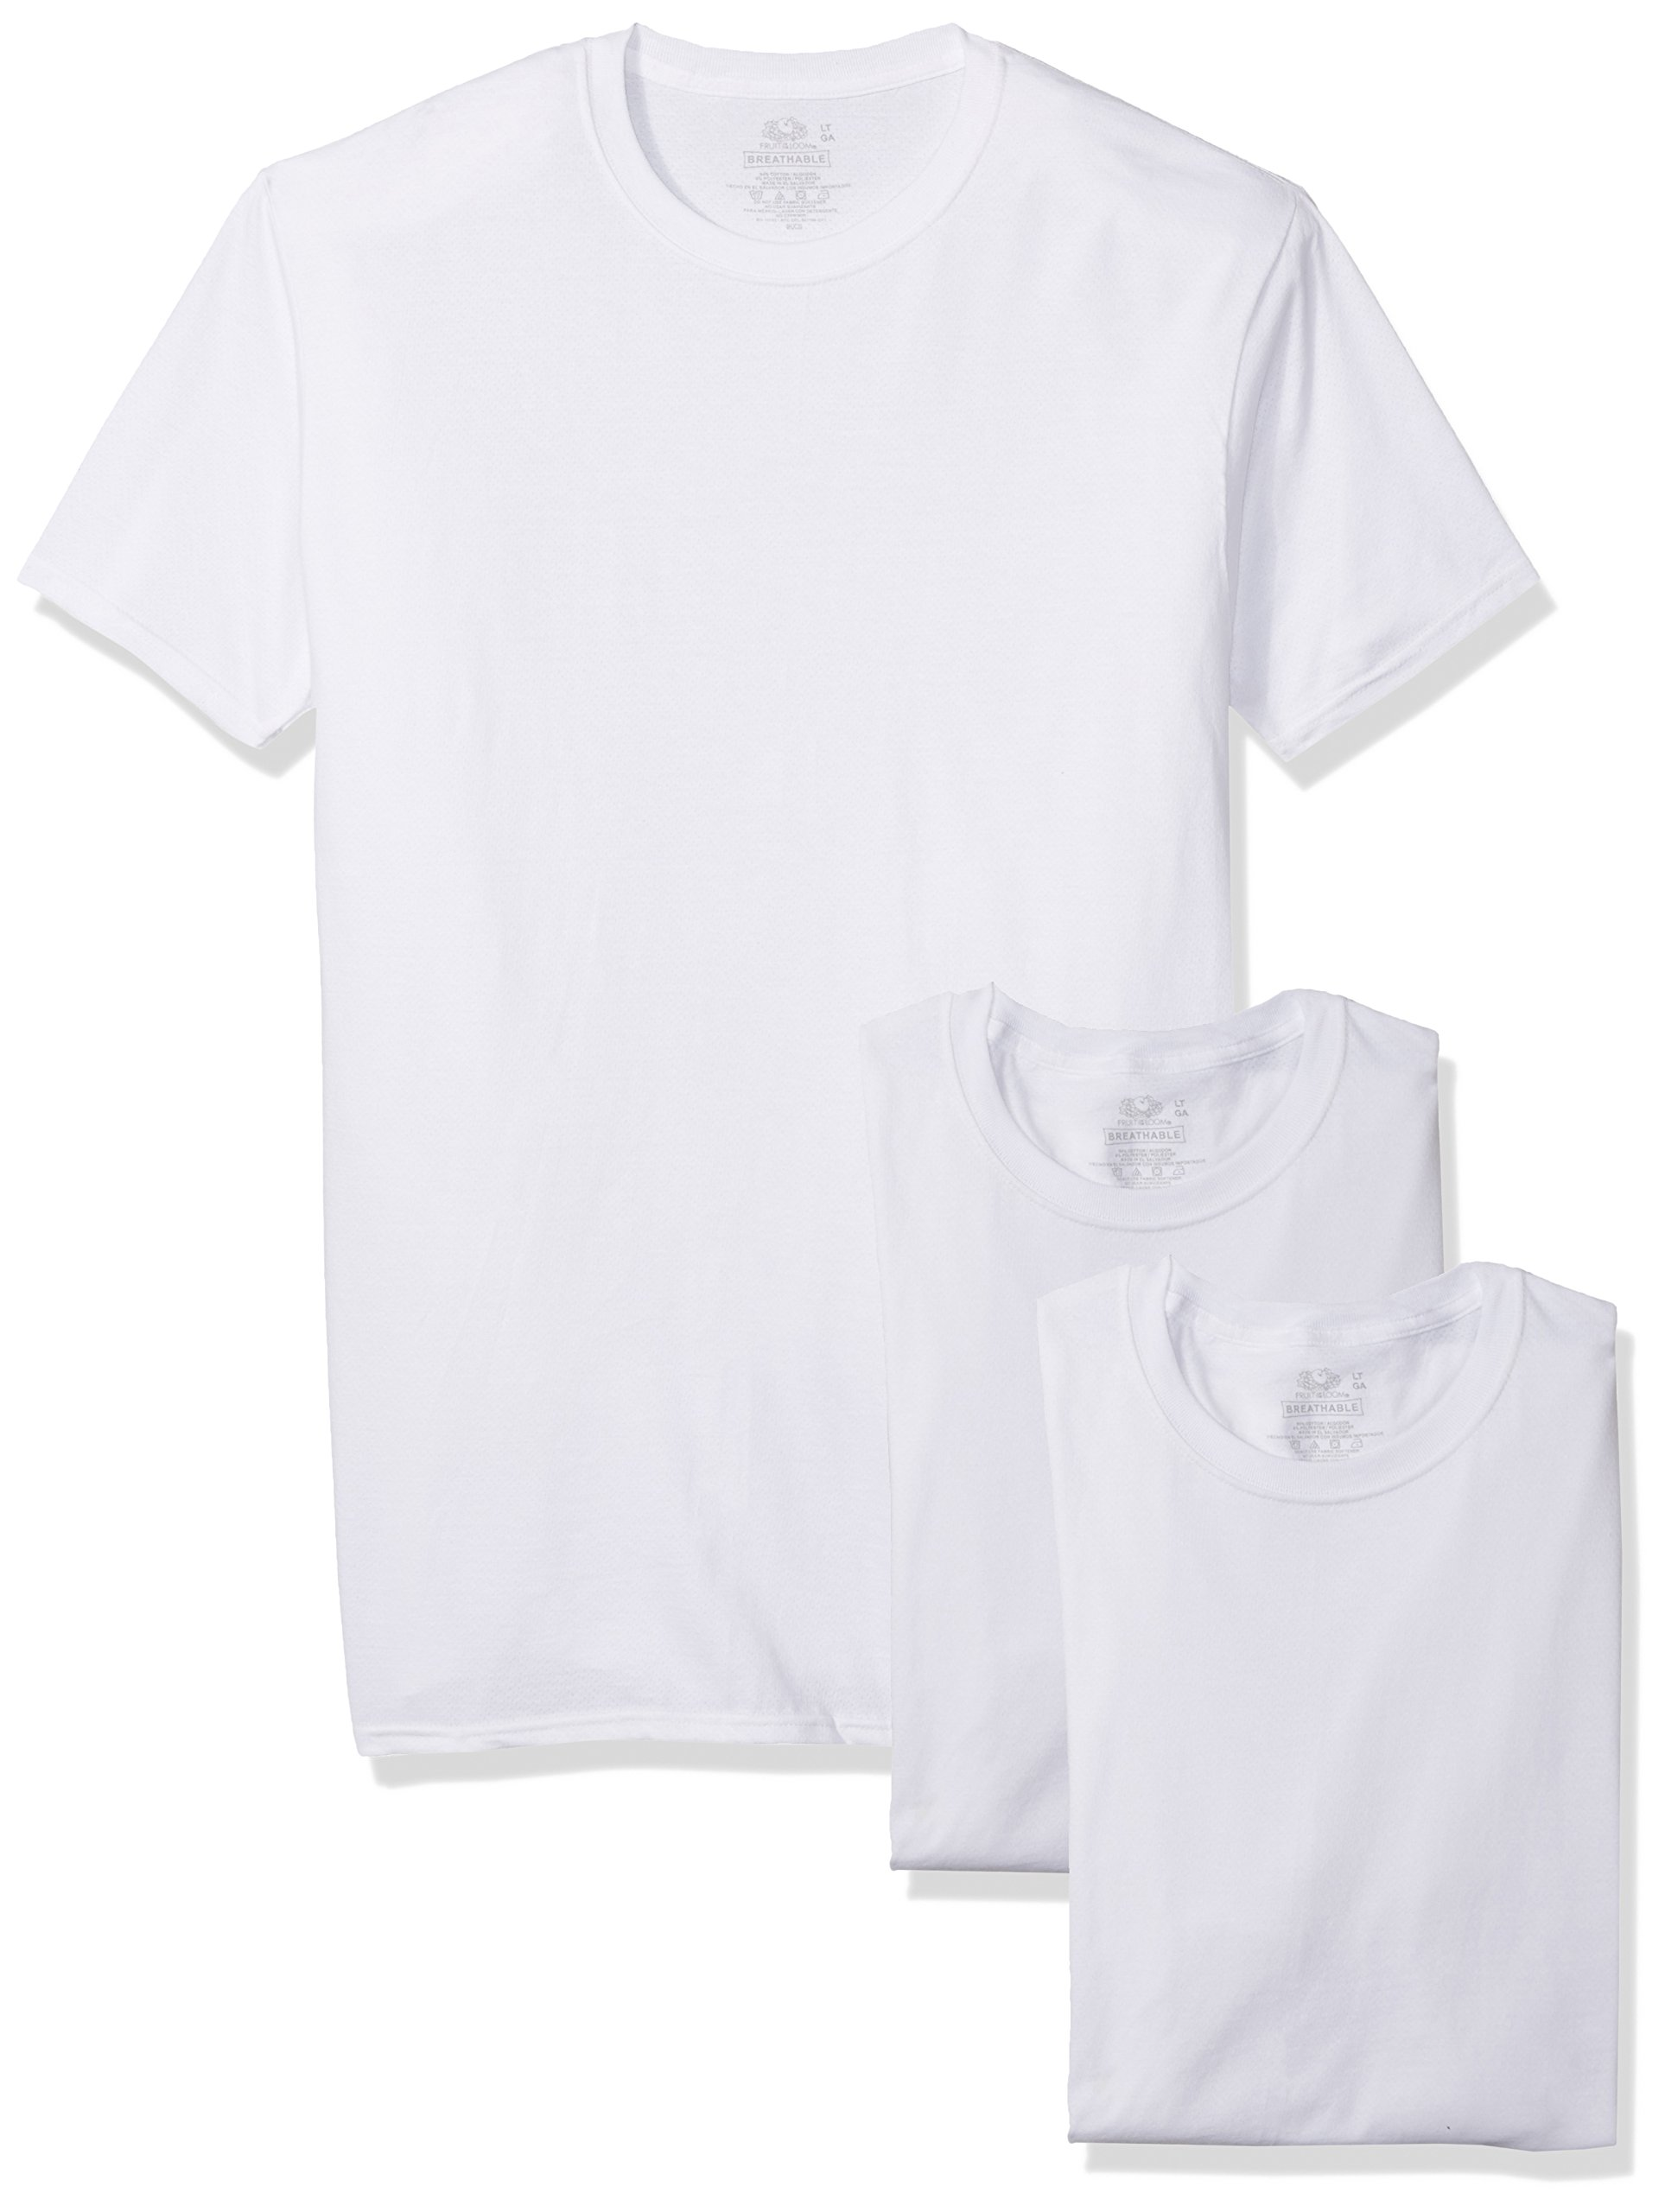 Fruit of the Loom Men's 3-Pack Breathable Crew T-Shirt, White Ice - Tall Sizes, Large